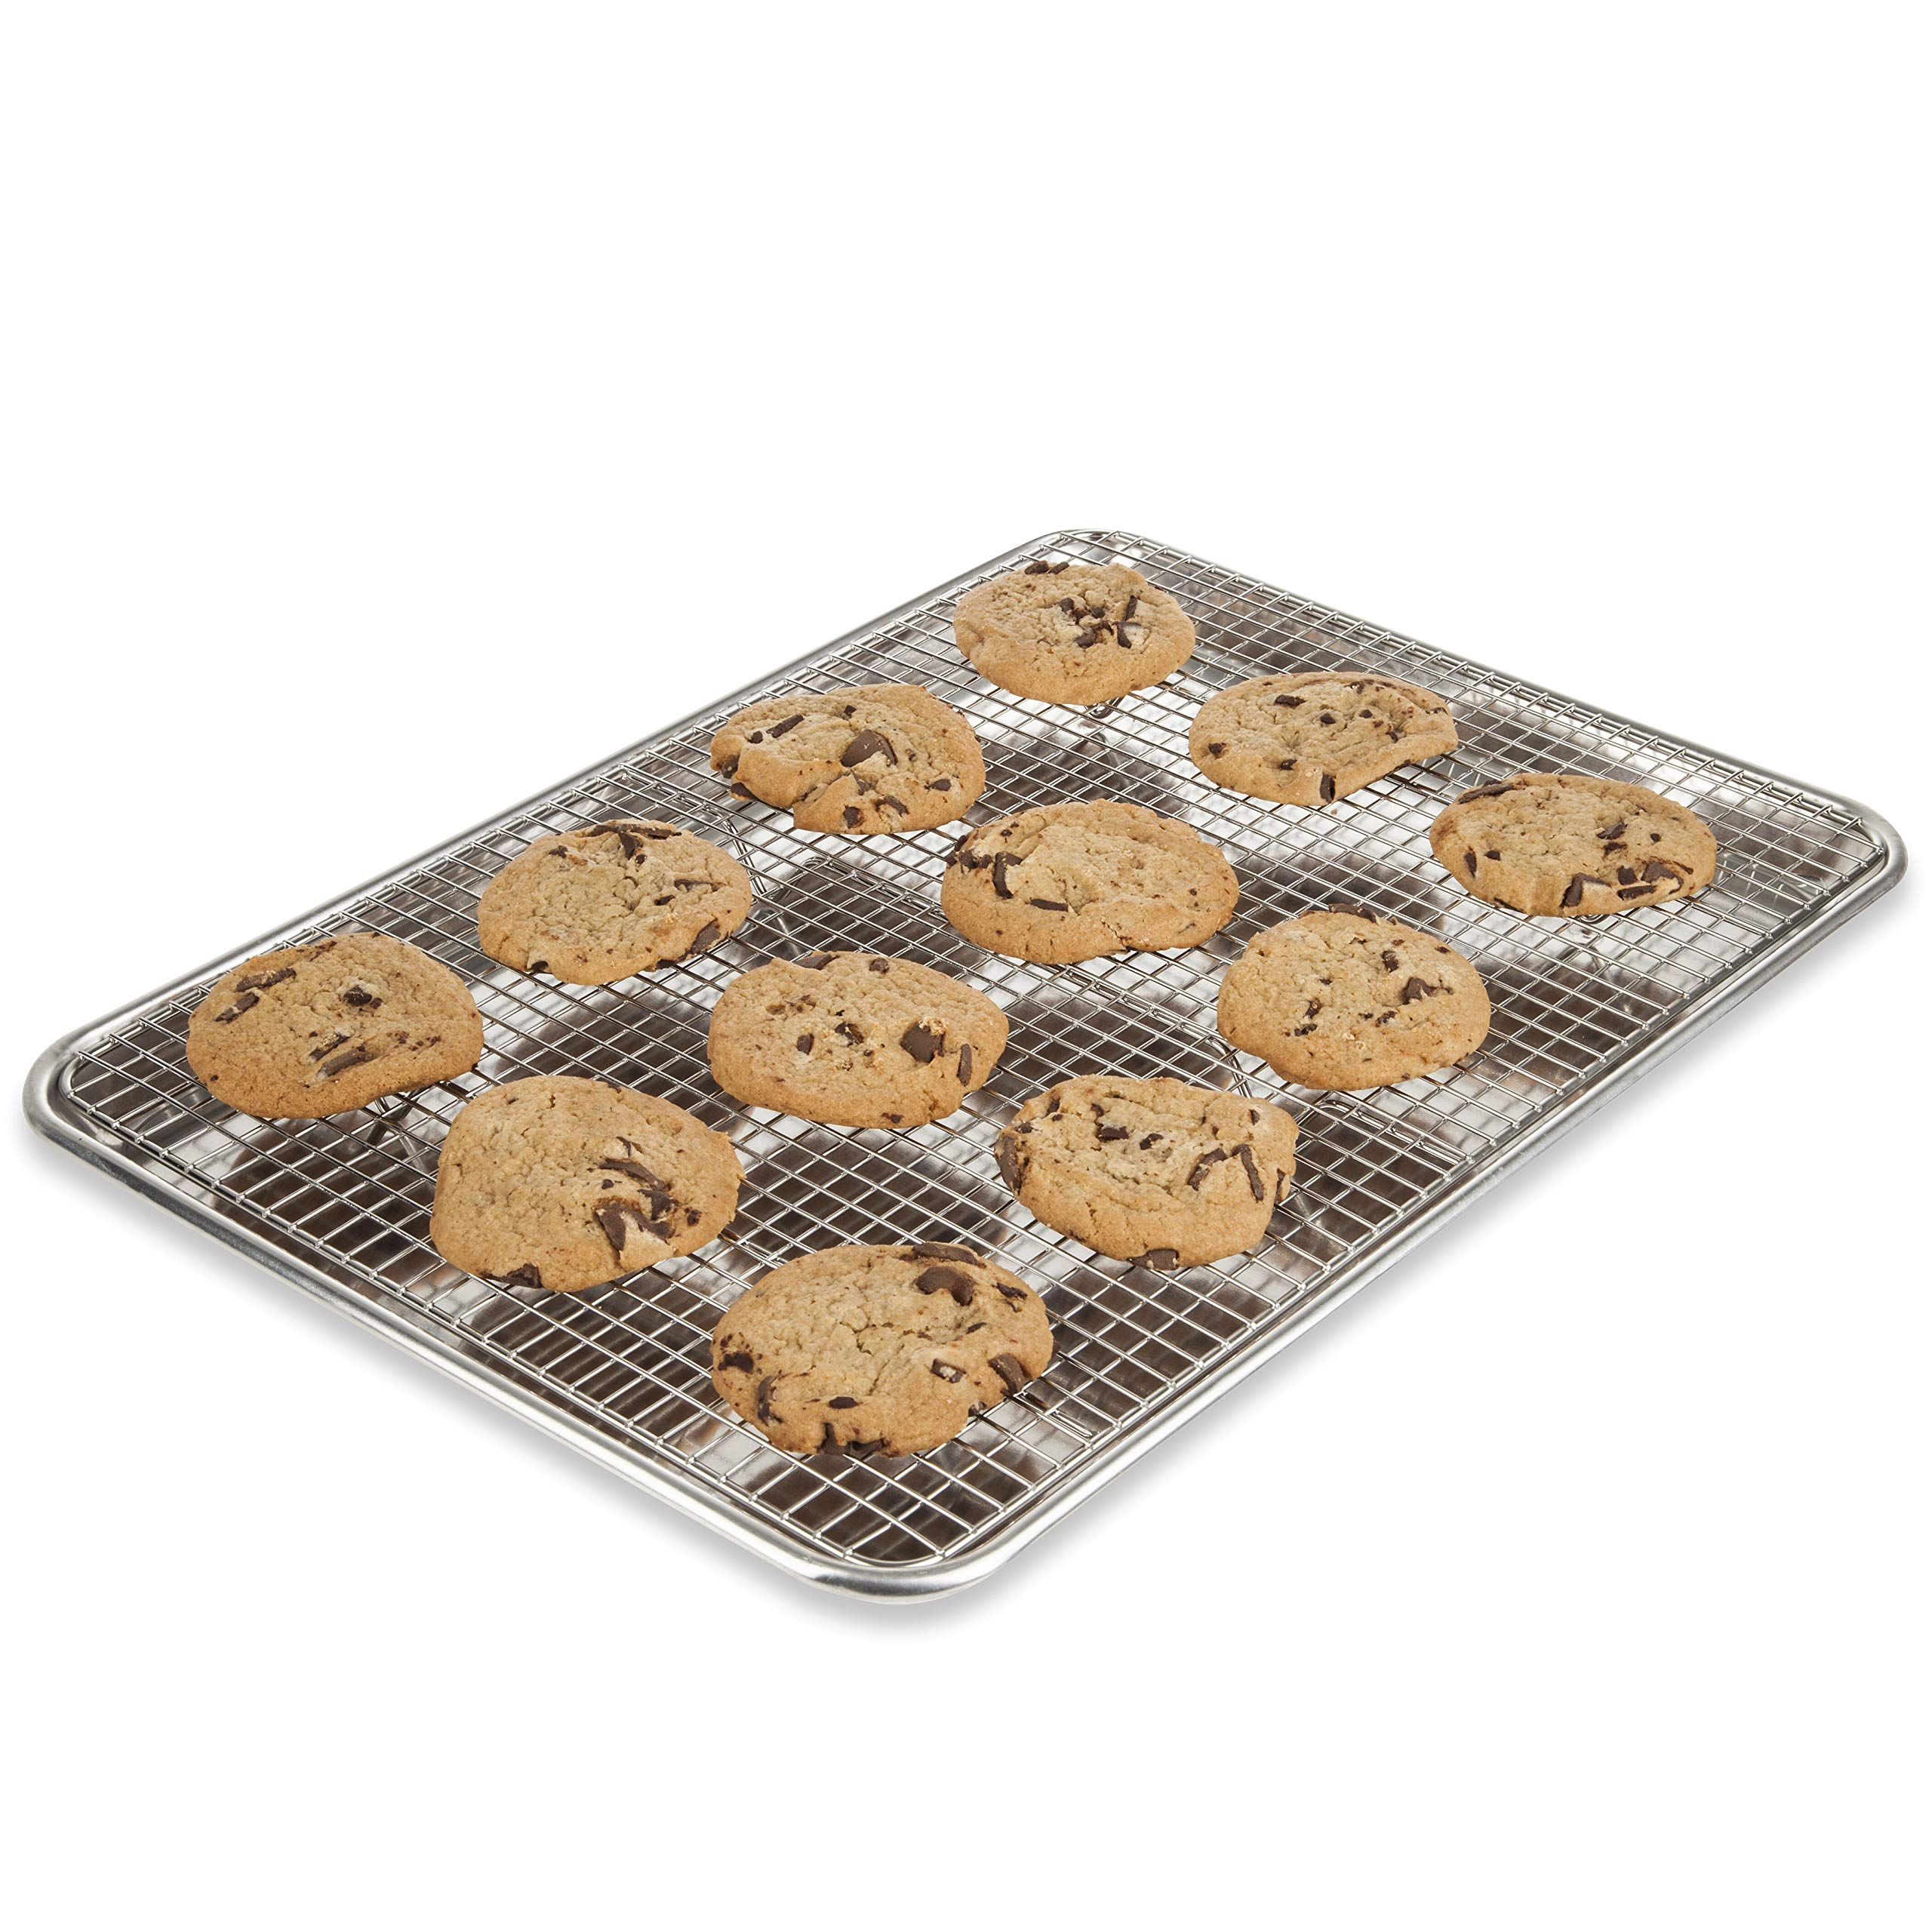 KITCHENATICS Baking Sheet with Cooling Rack: Half Aluminum Cookie Pan Tray with Stainless Steel Wire and Roasting Rack - 13.1'' x 17.9'', Heavy Duty Commercial Quality by KITCHENATICS (Image #10)